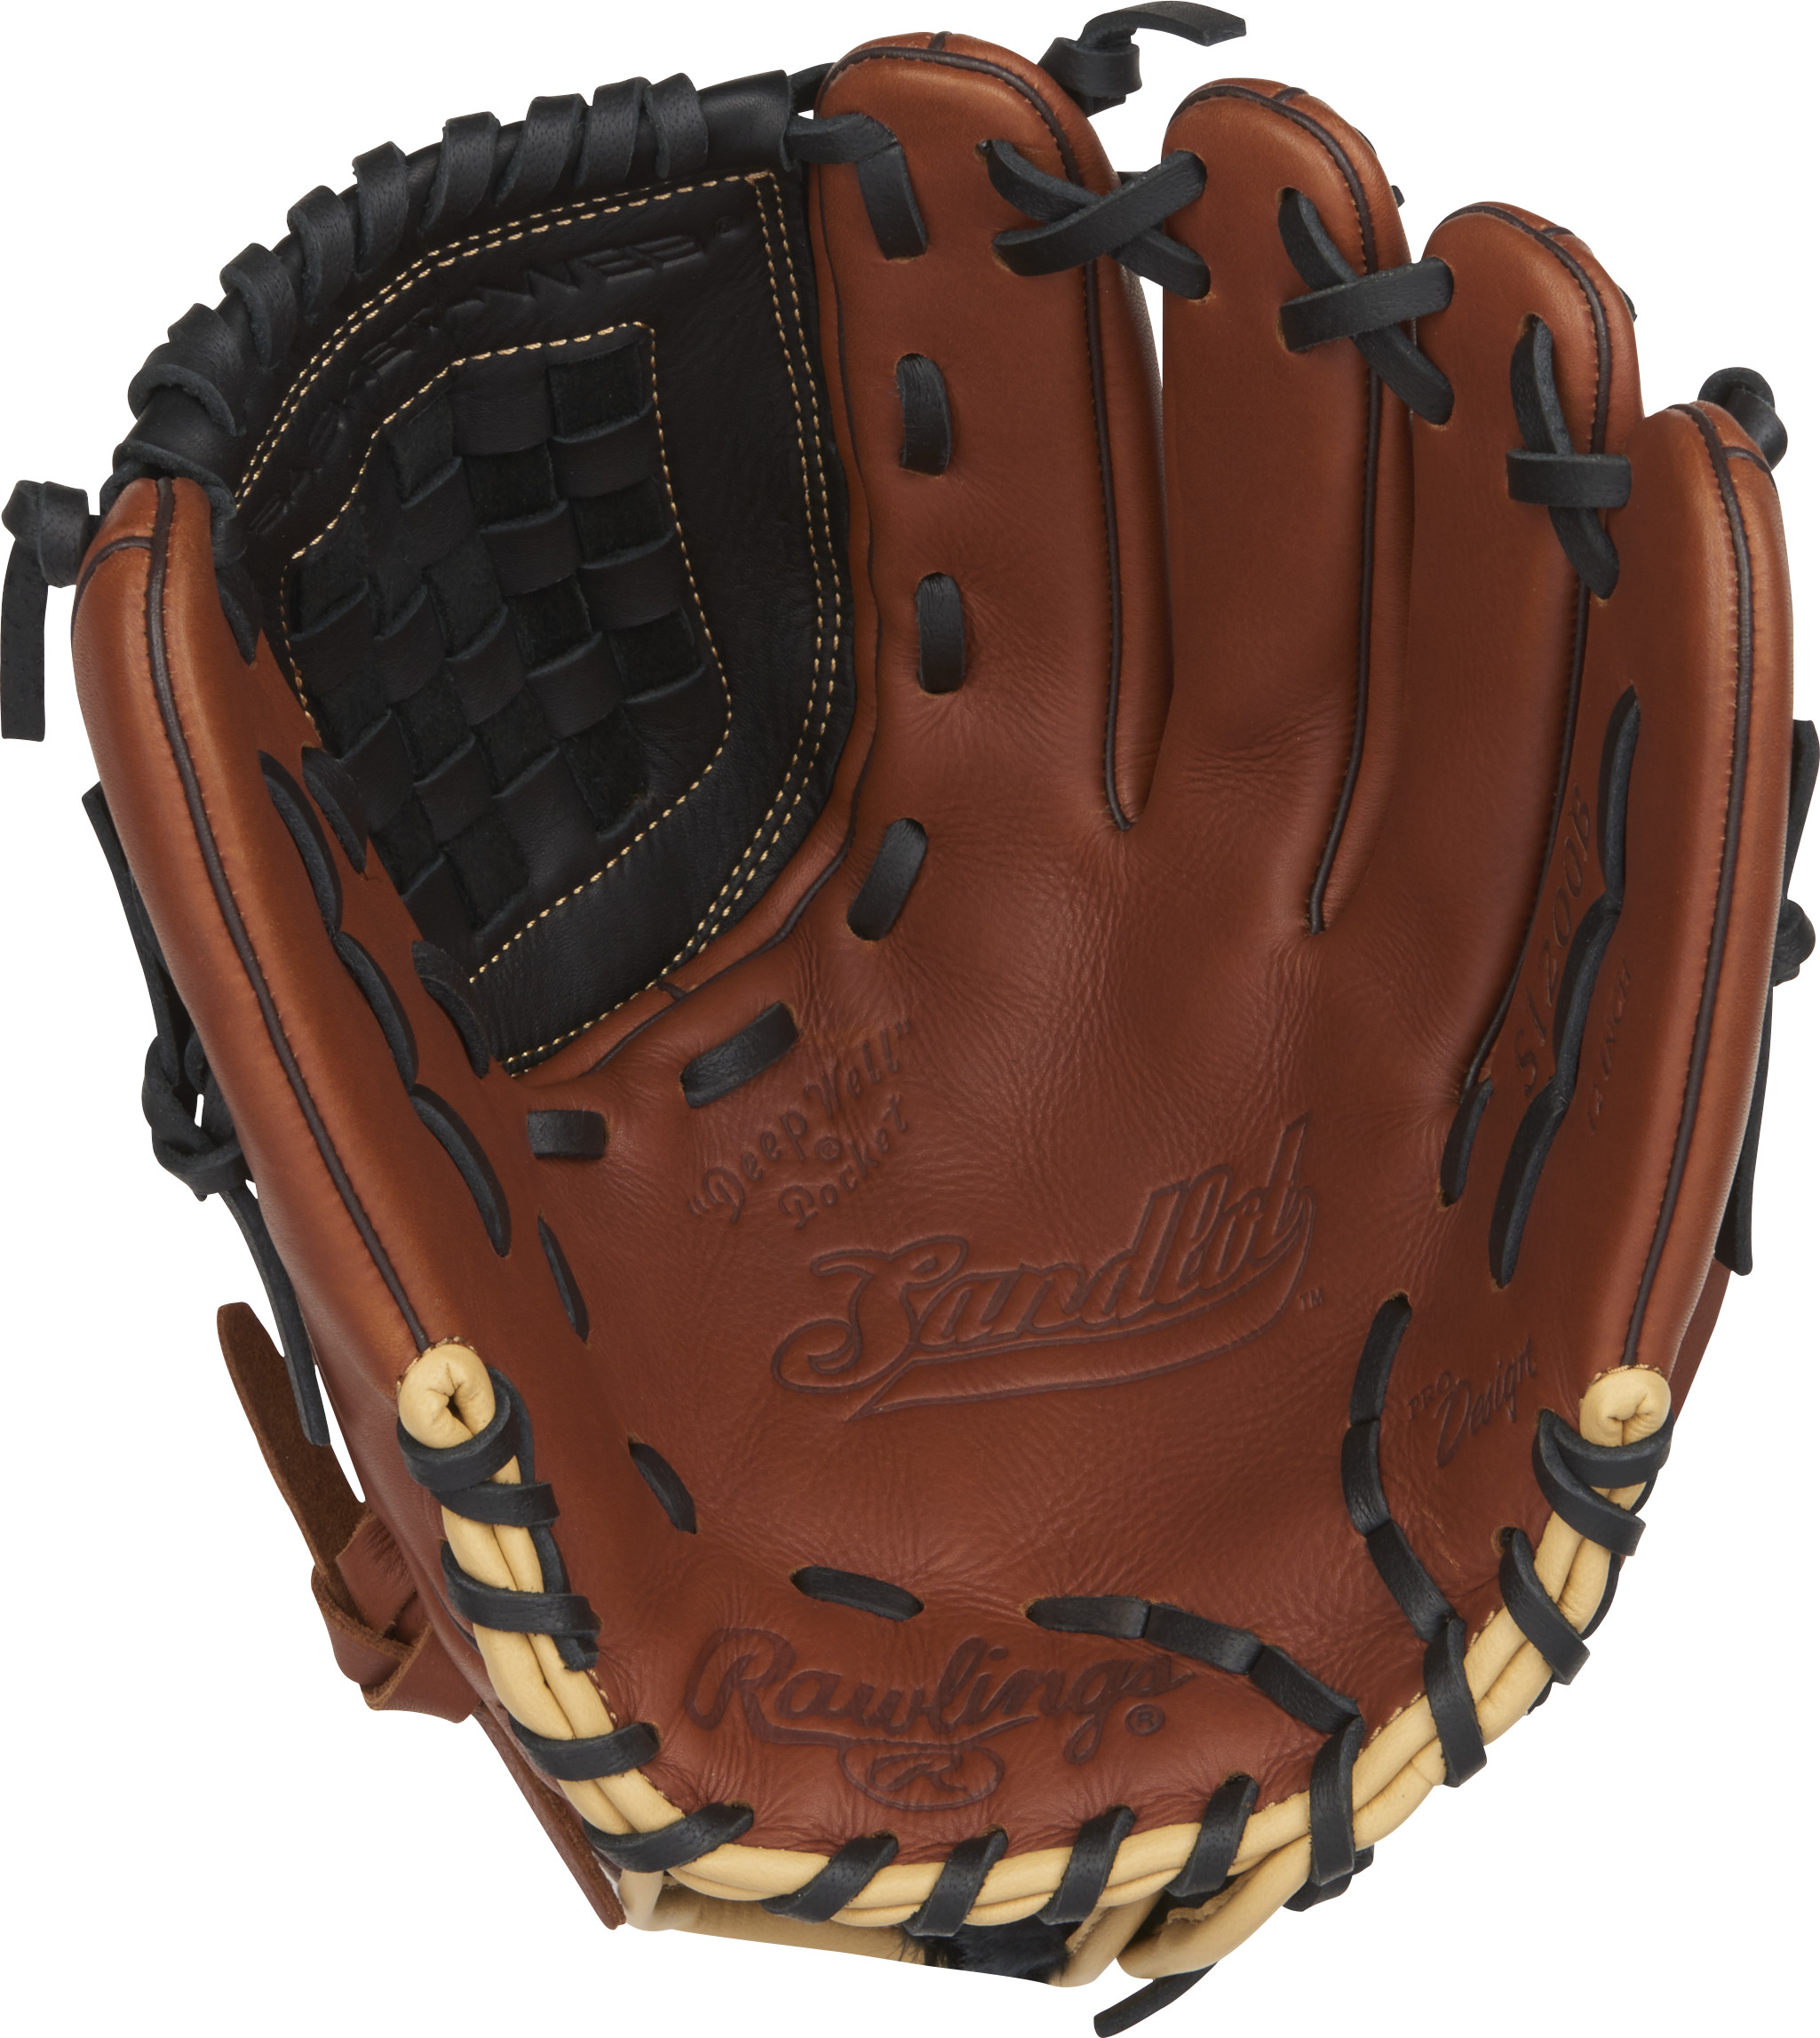 http://www.bestbatdeals.com/images/gloves/rawlings/S1200B-1.jpg